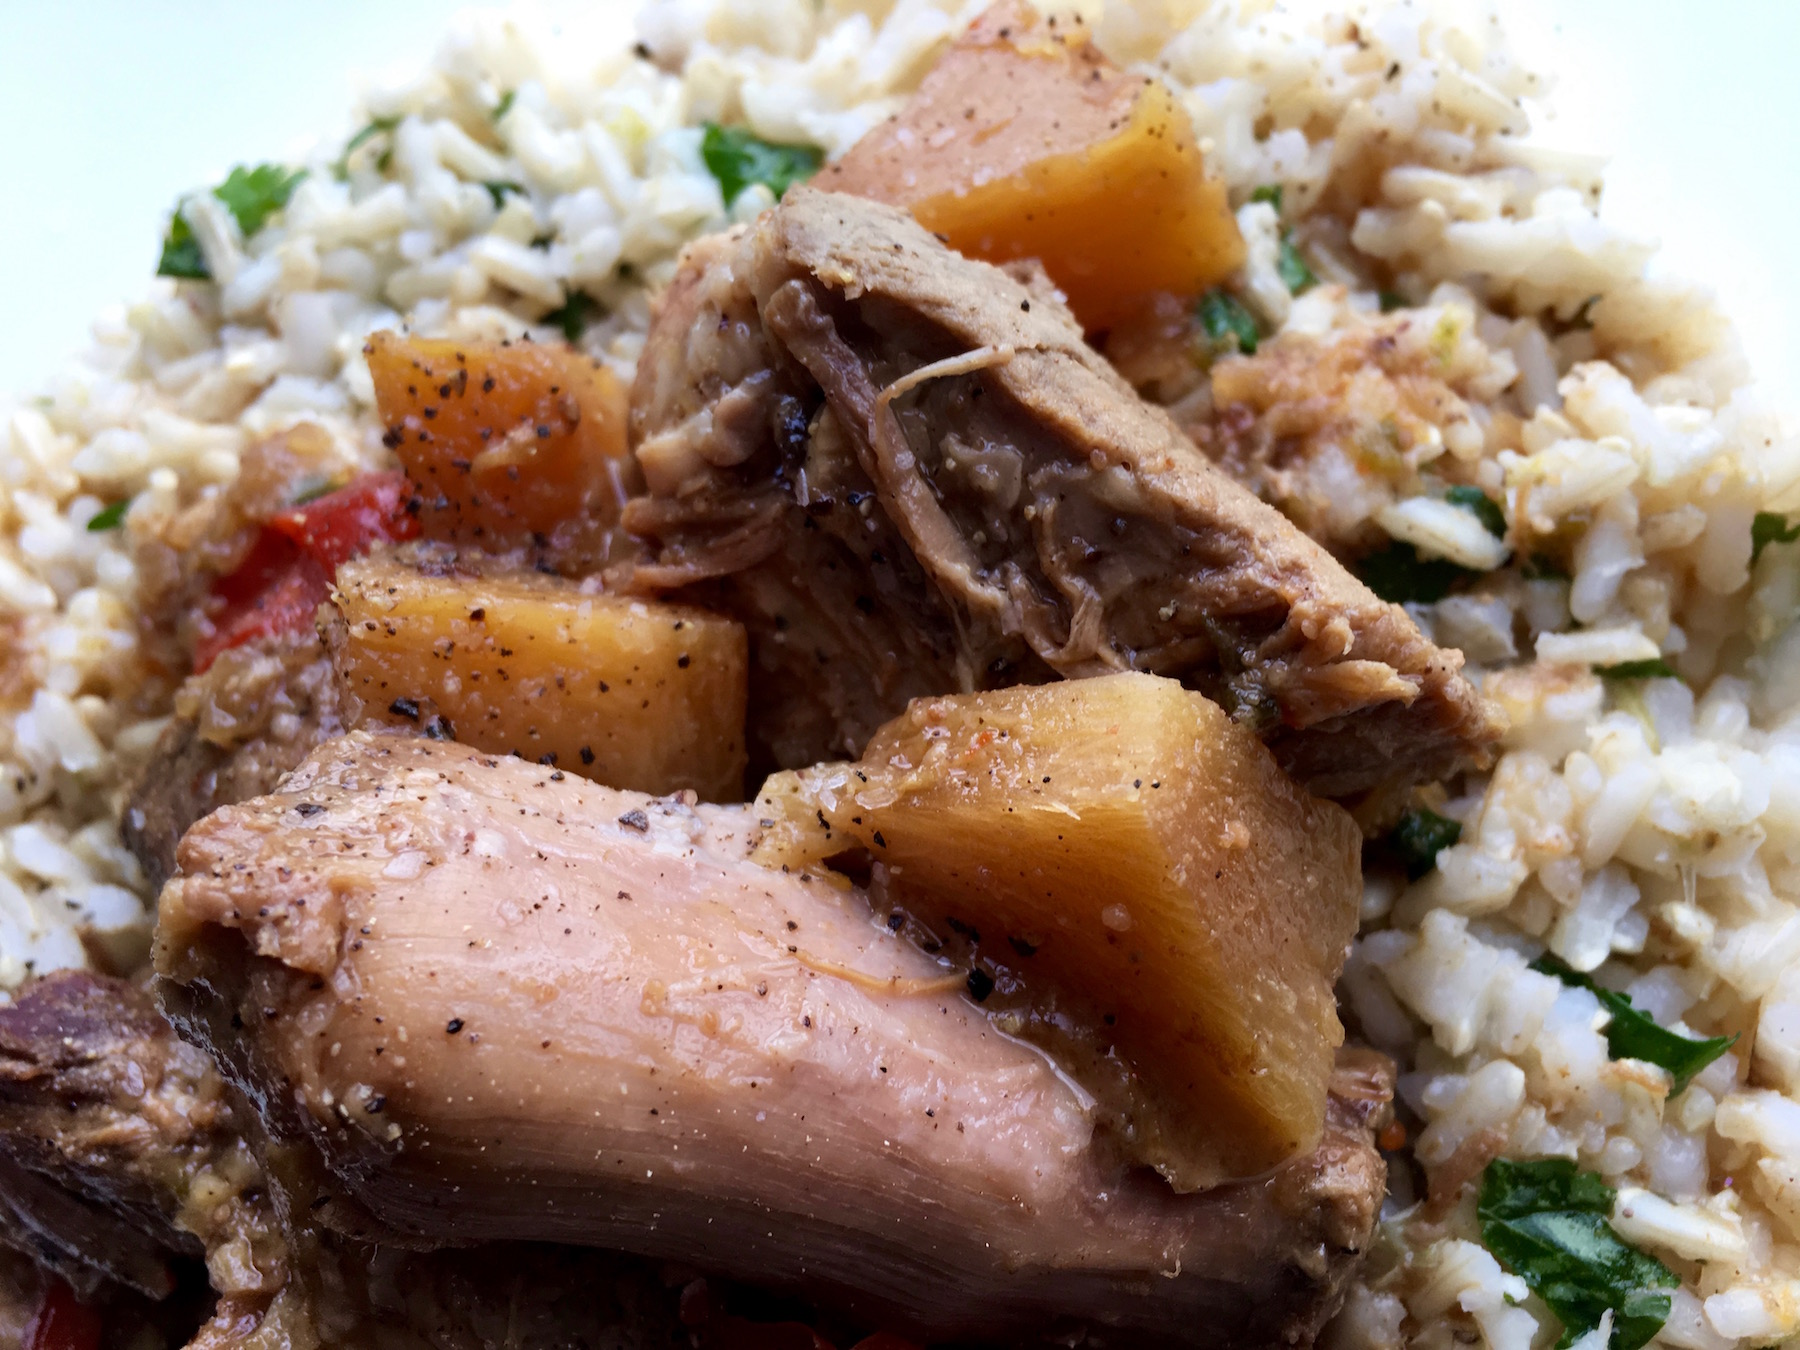 featured image showing the finished Slow cooker Sweet and Sour Pork